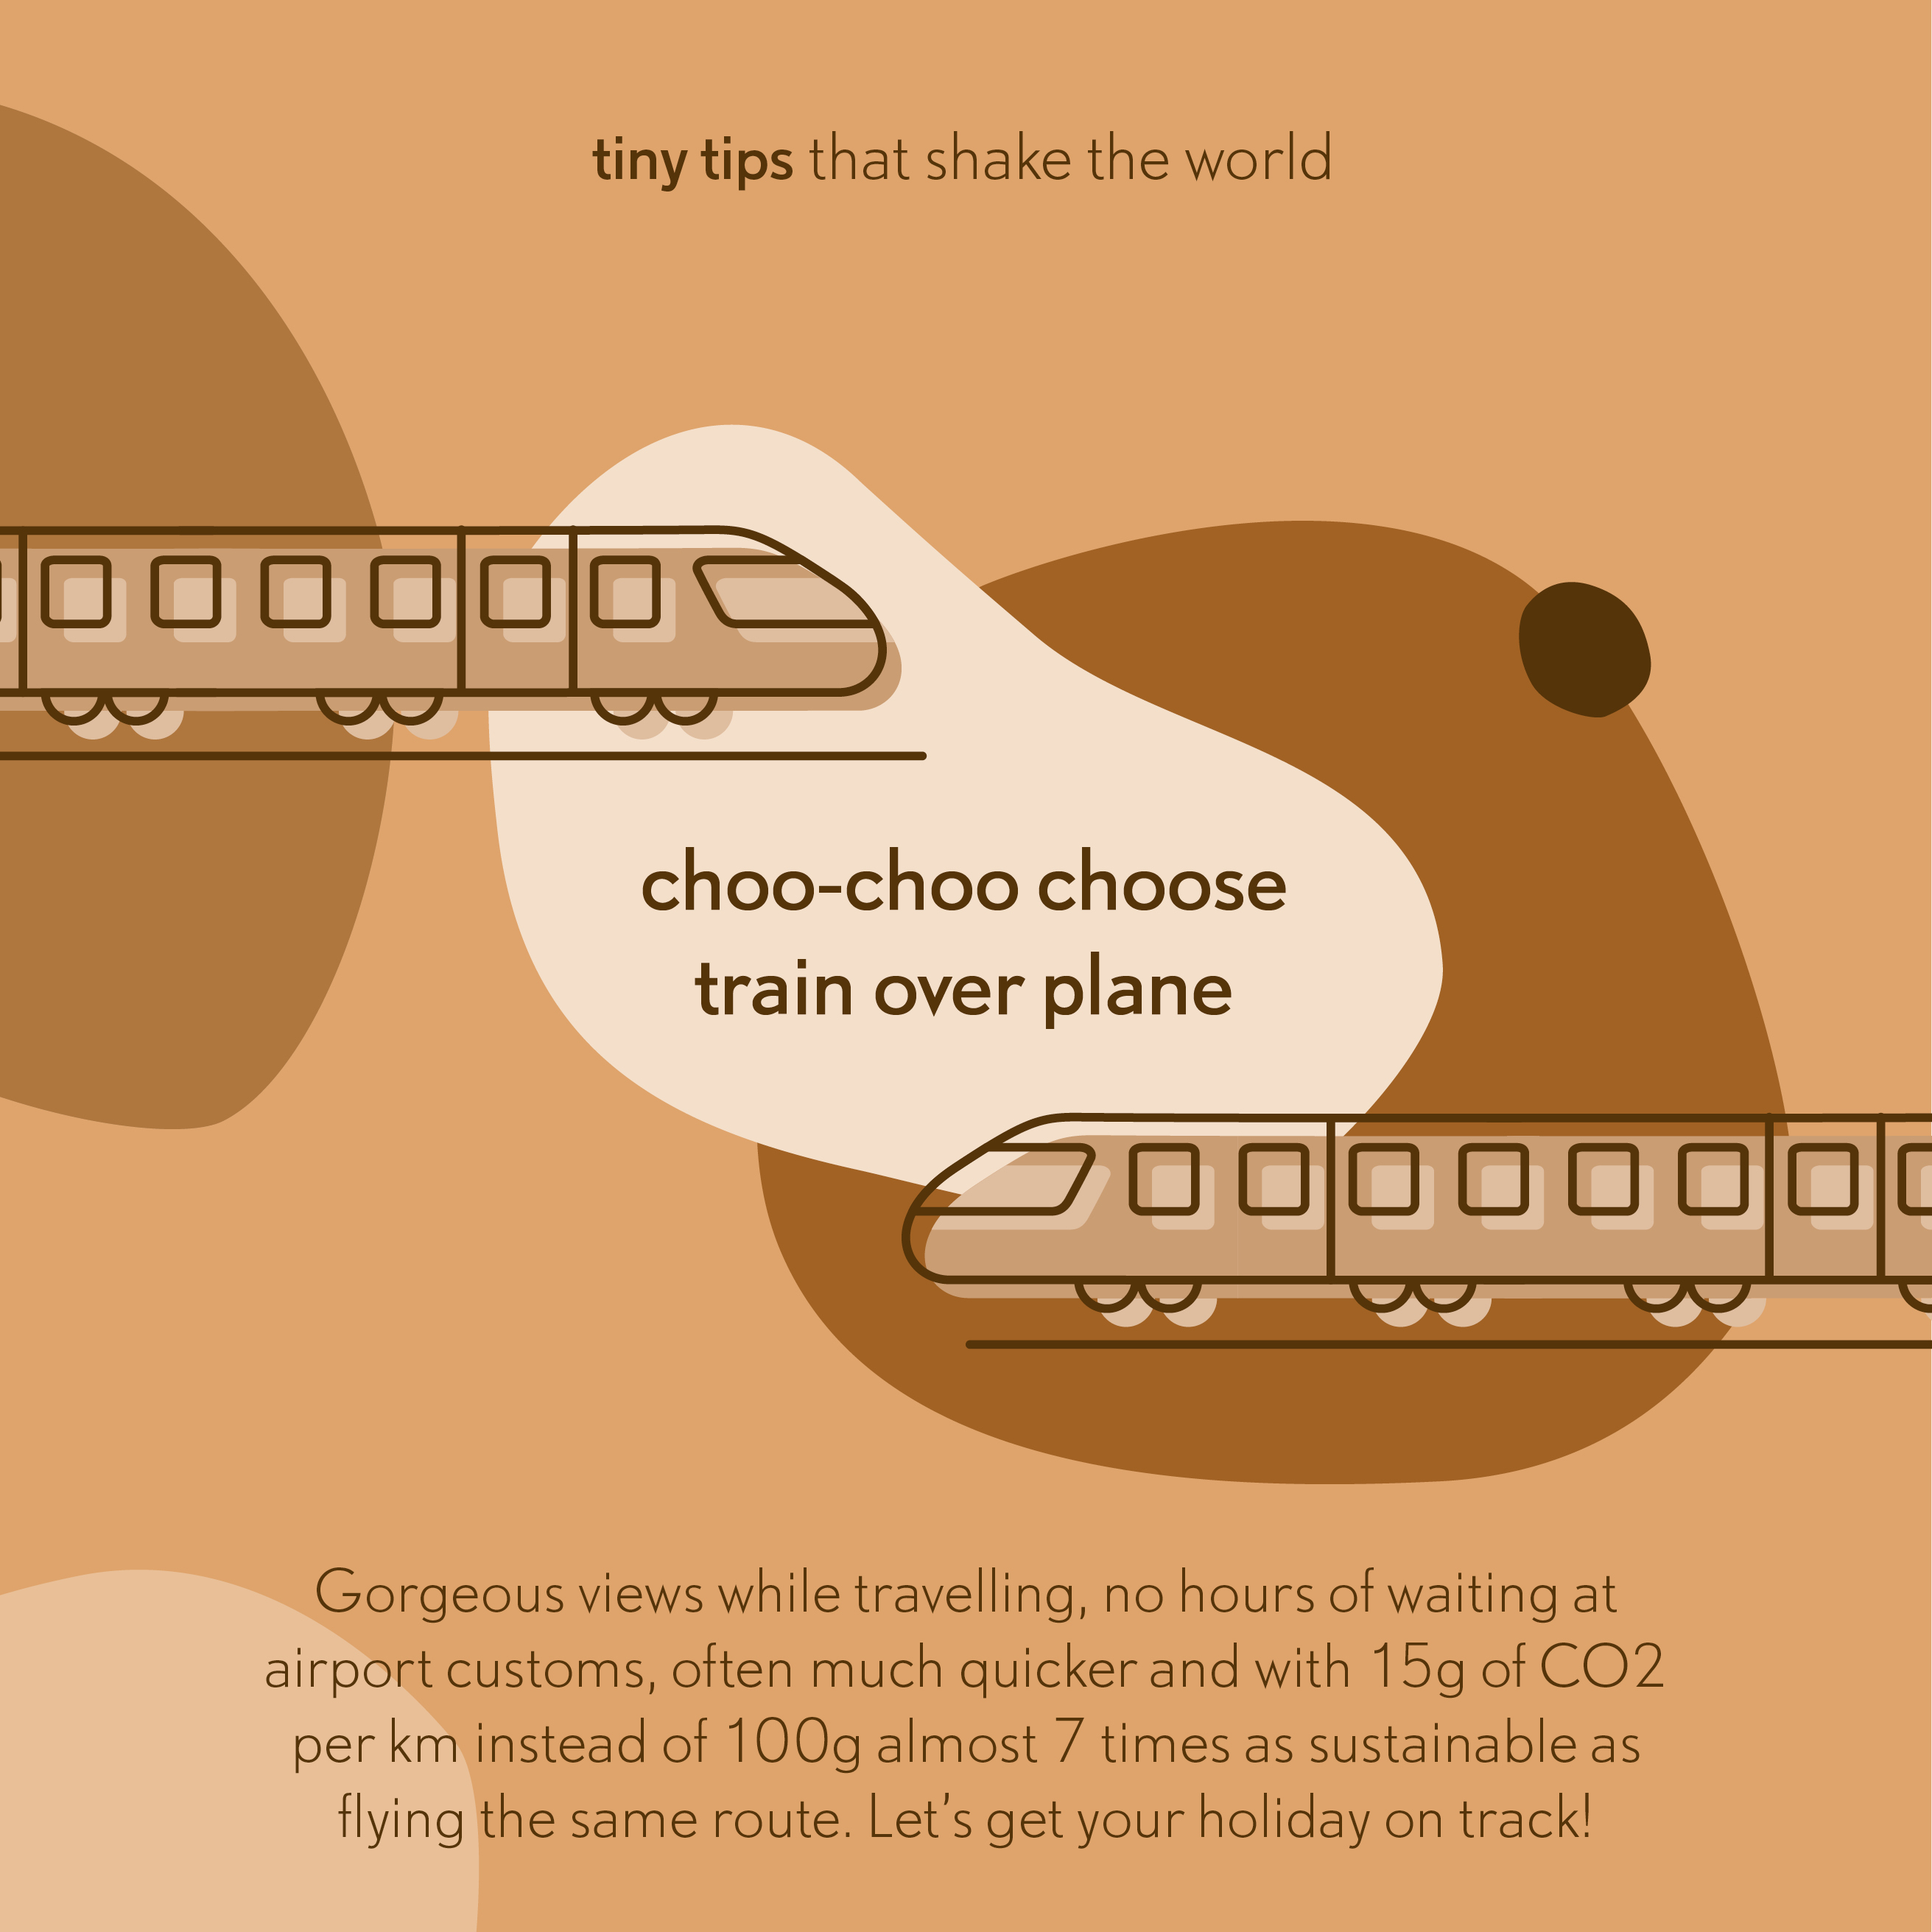 20190630 Choo-choo choose train over plane